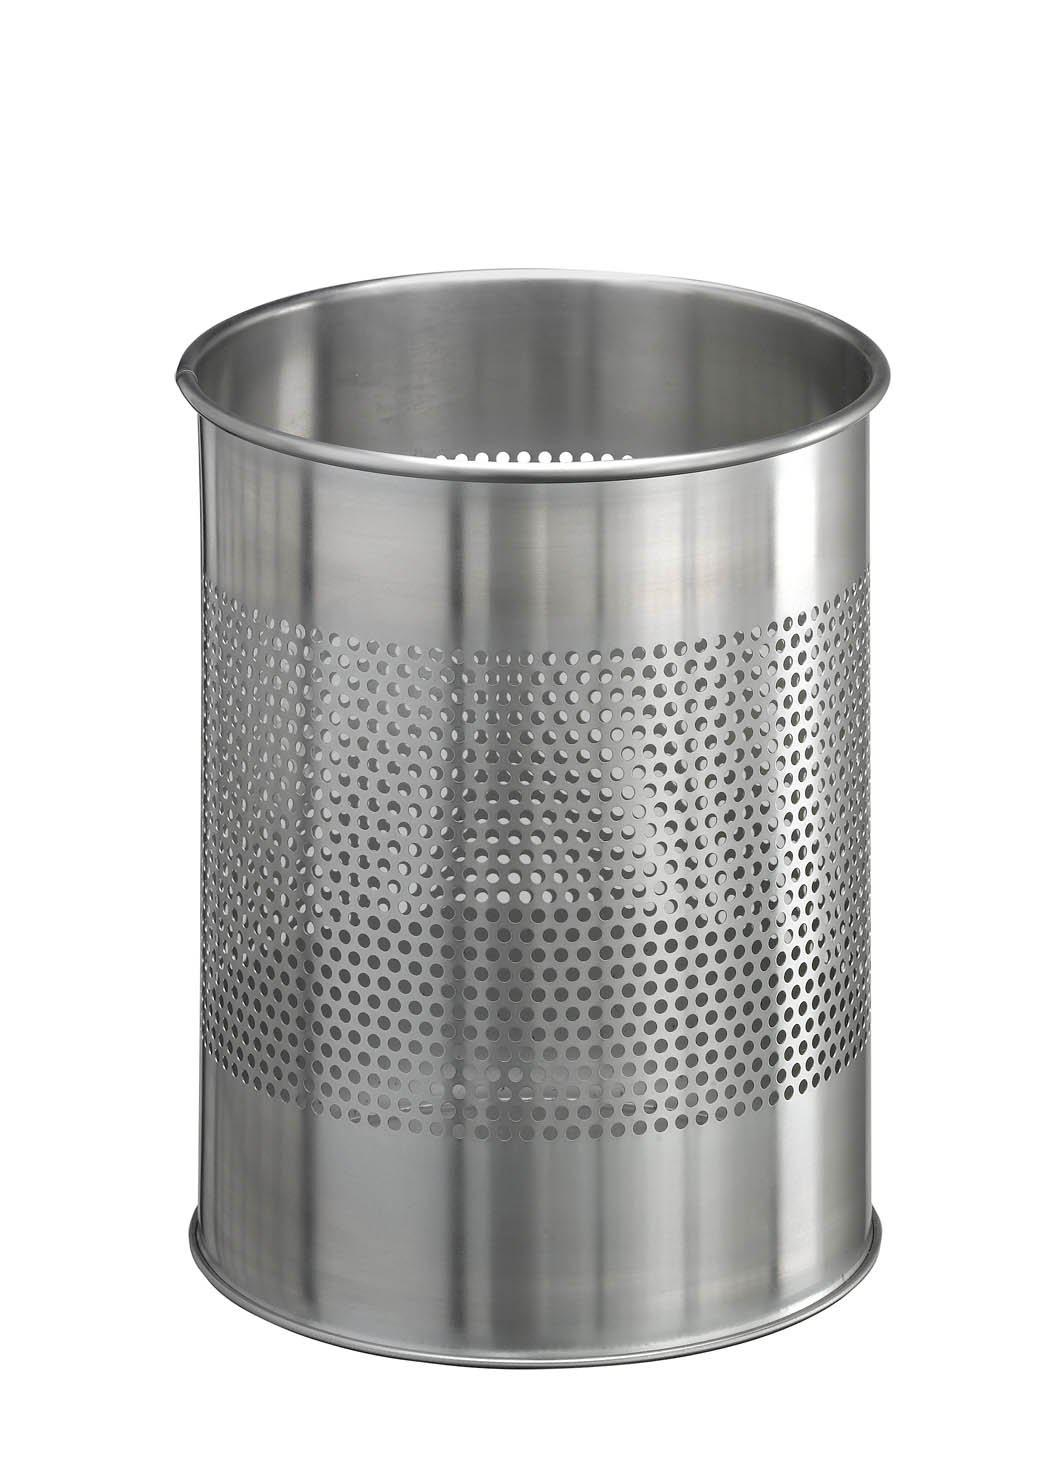 Classic Round Stainless Steel Waste Paper Basket 15L with 165mm Decorative Perforation in the middle-Silver-Distinct Designs (London) Ltd